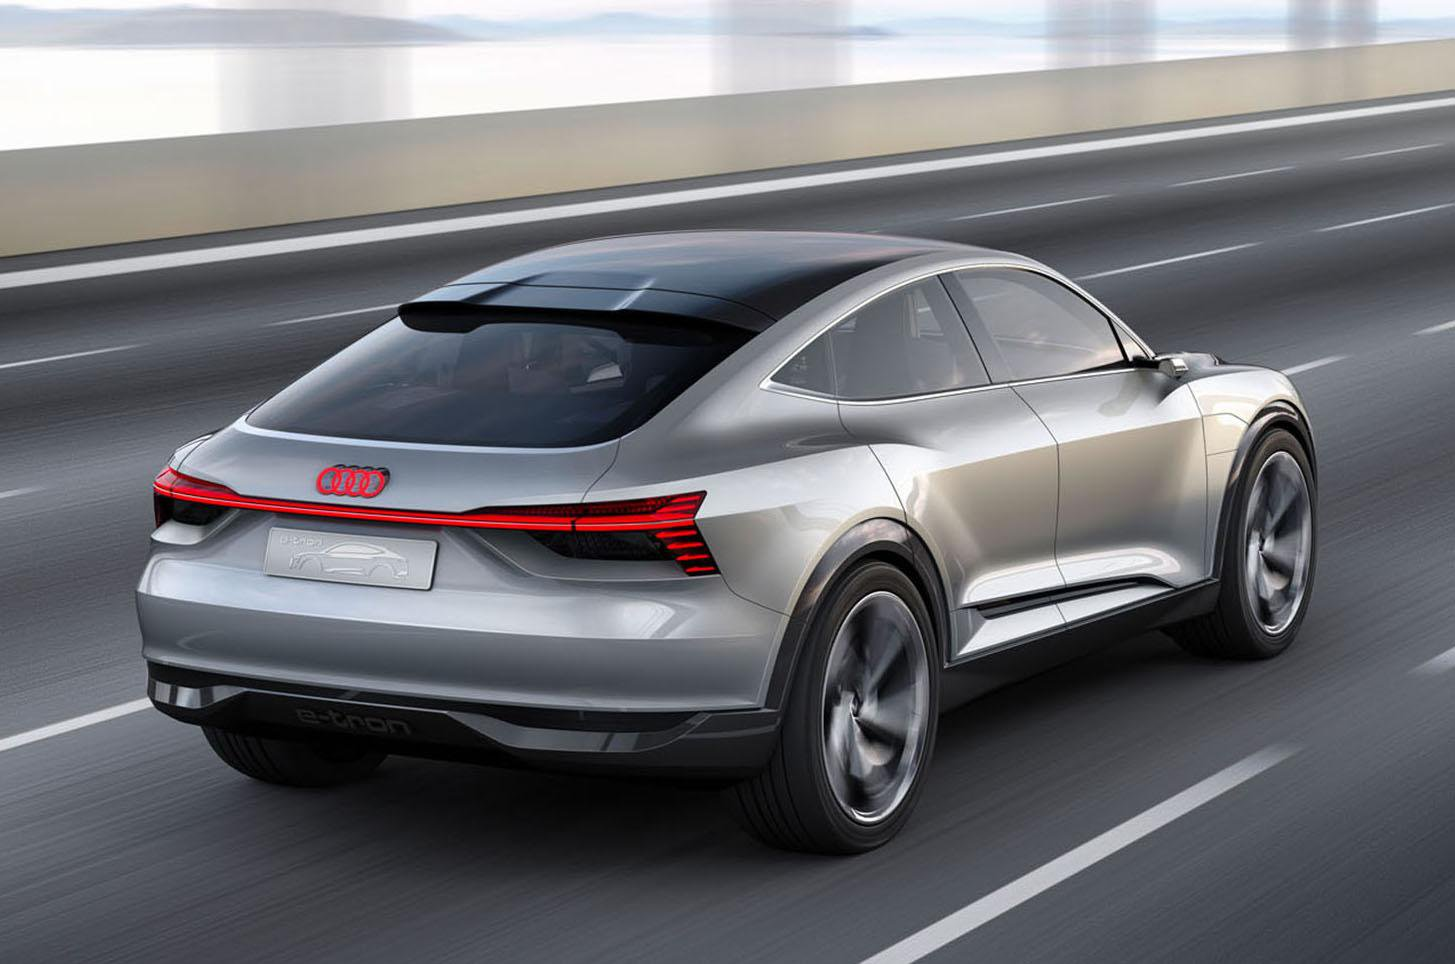 New Audi E-tron Sportback to take on Tesla